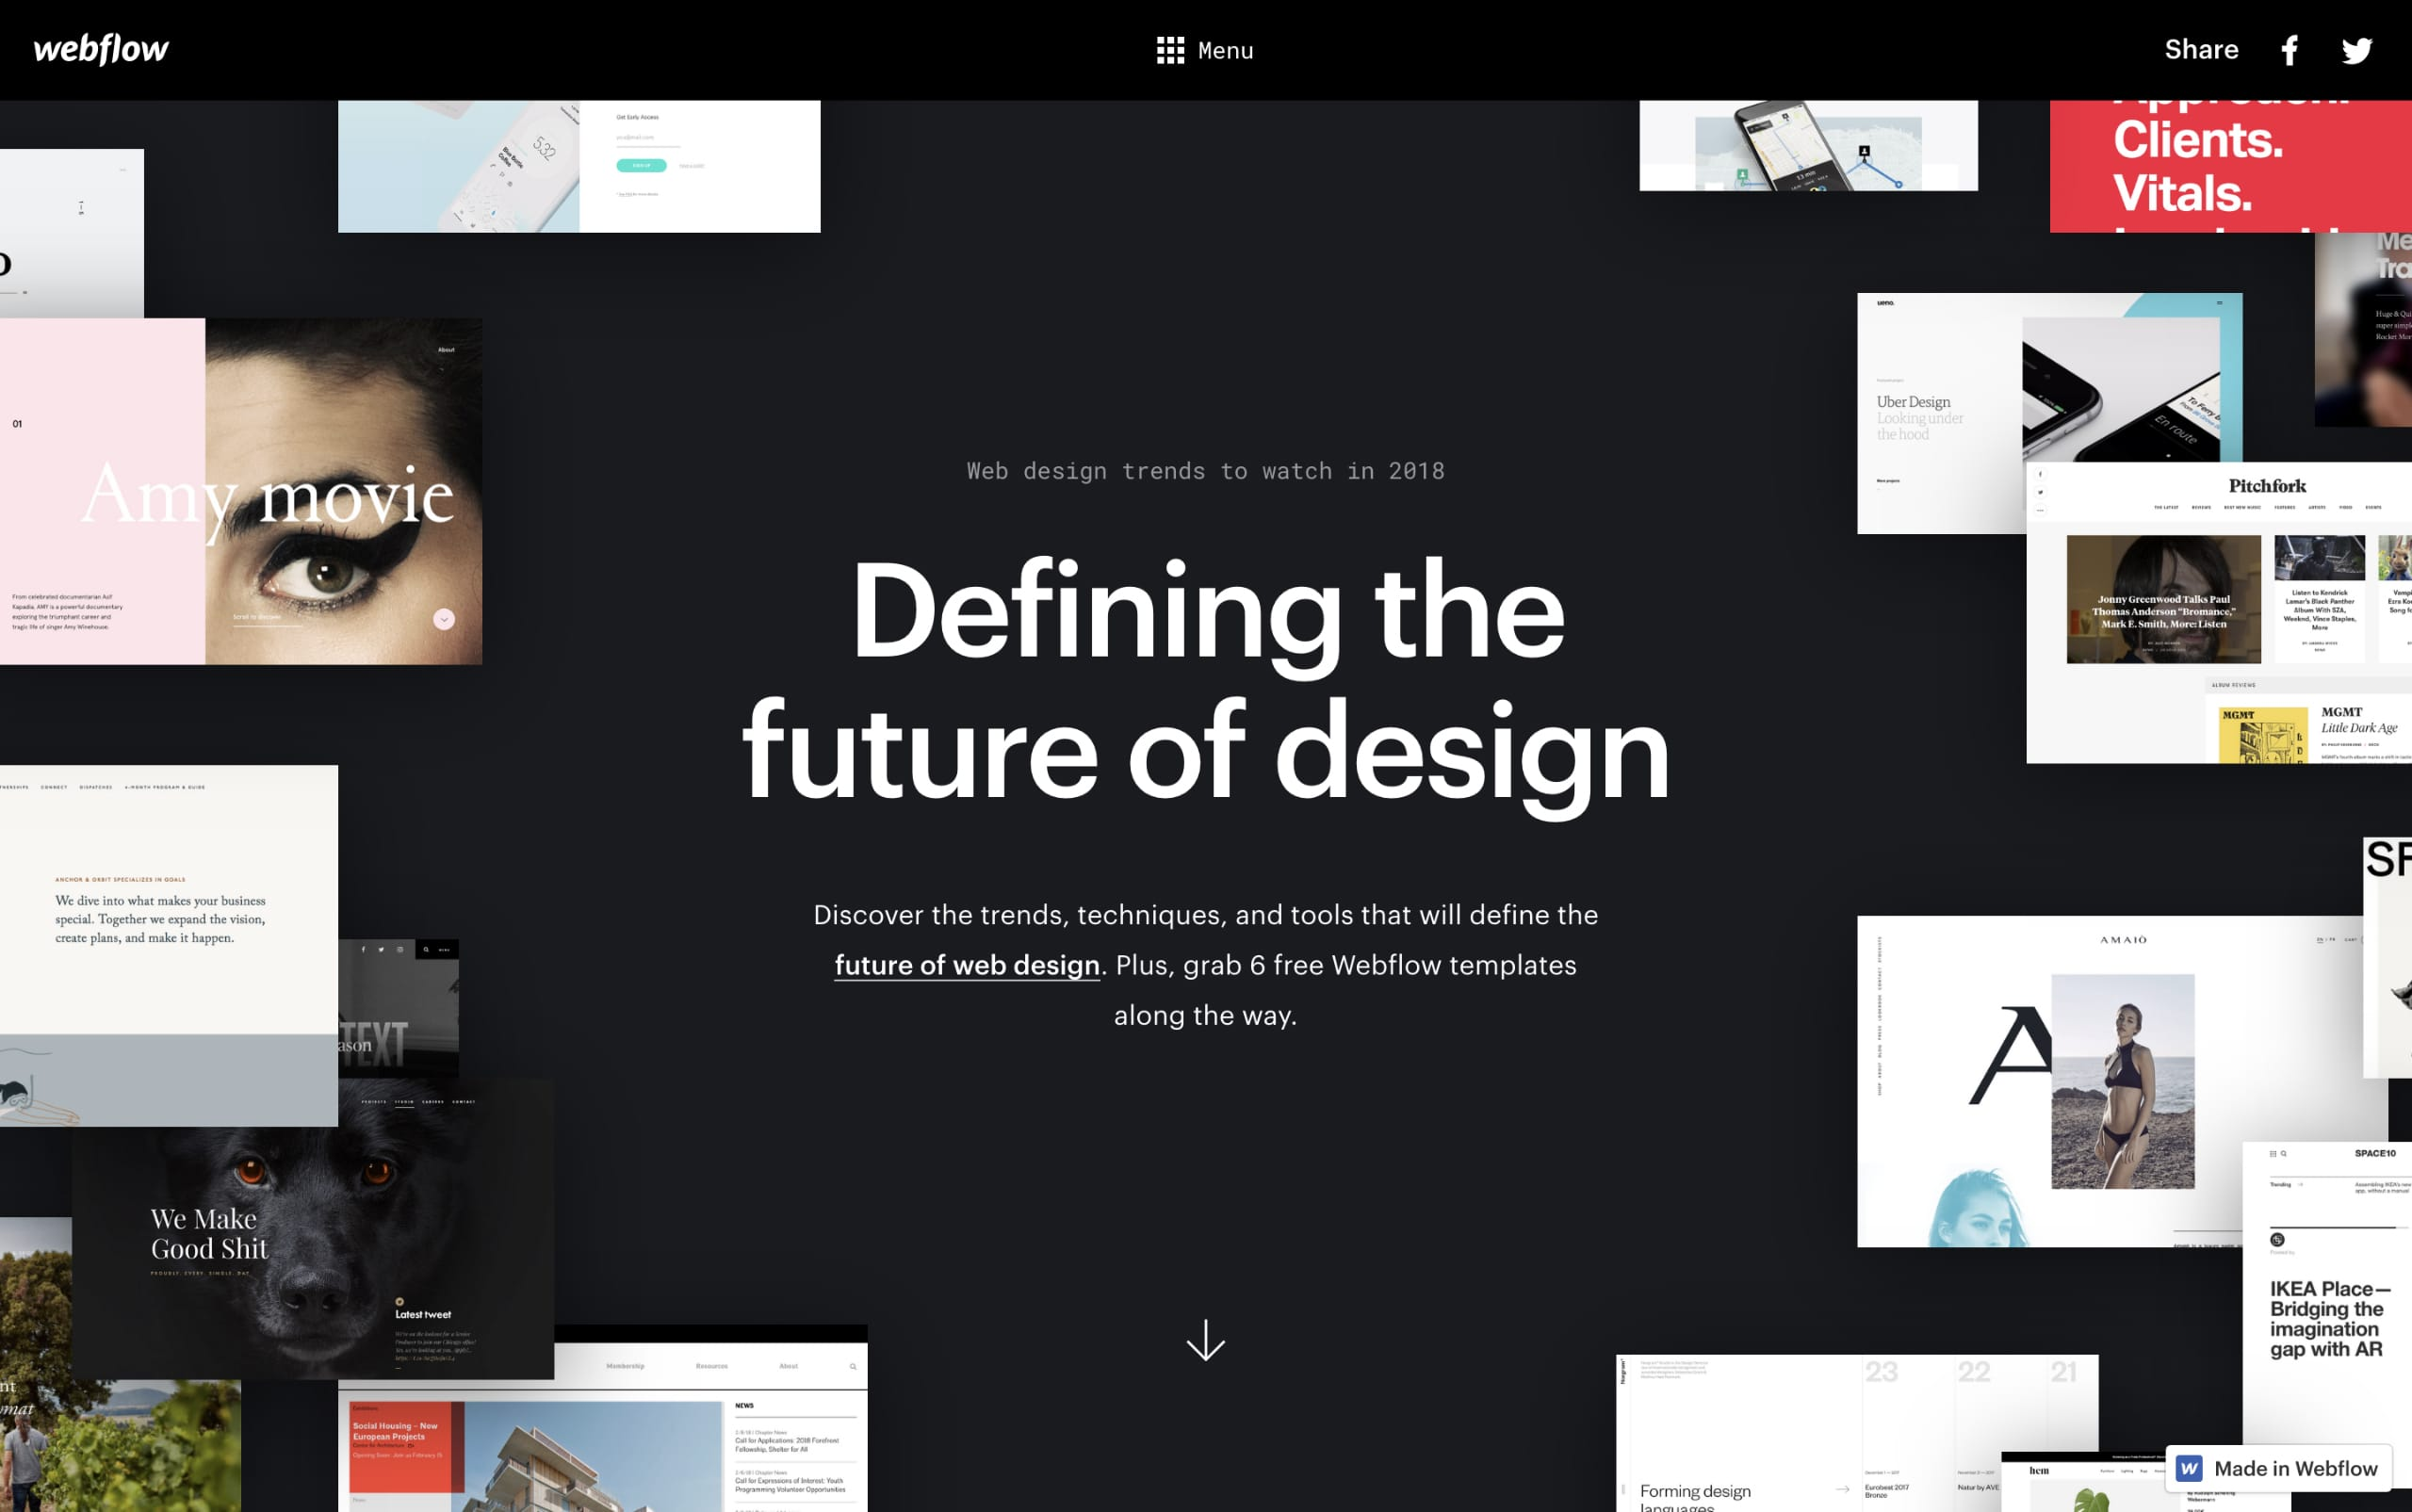 Webflow Design Trends 2018 Website Screenshot